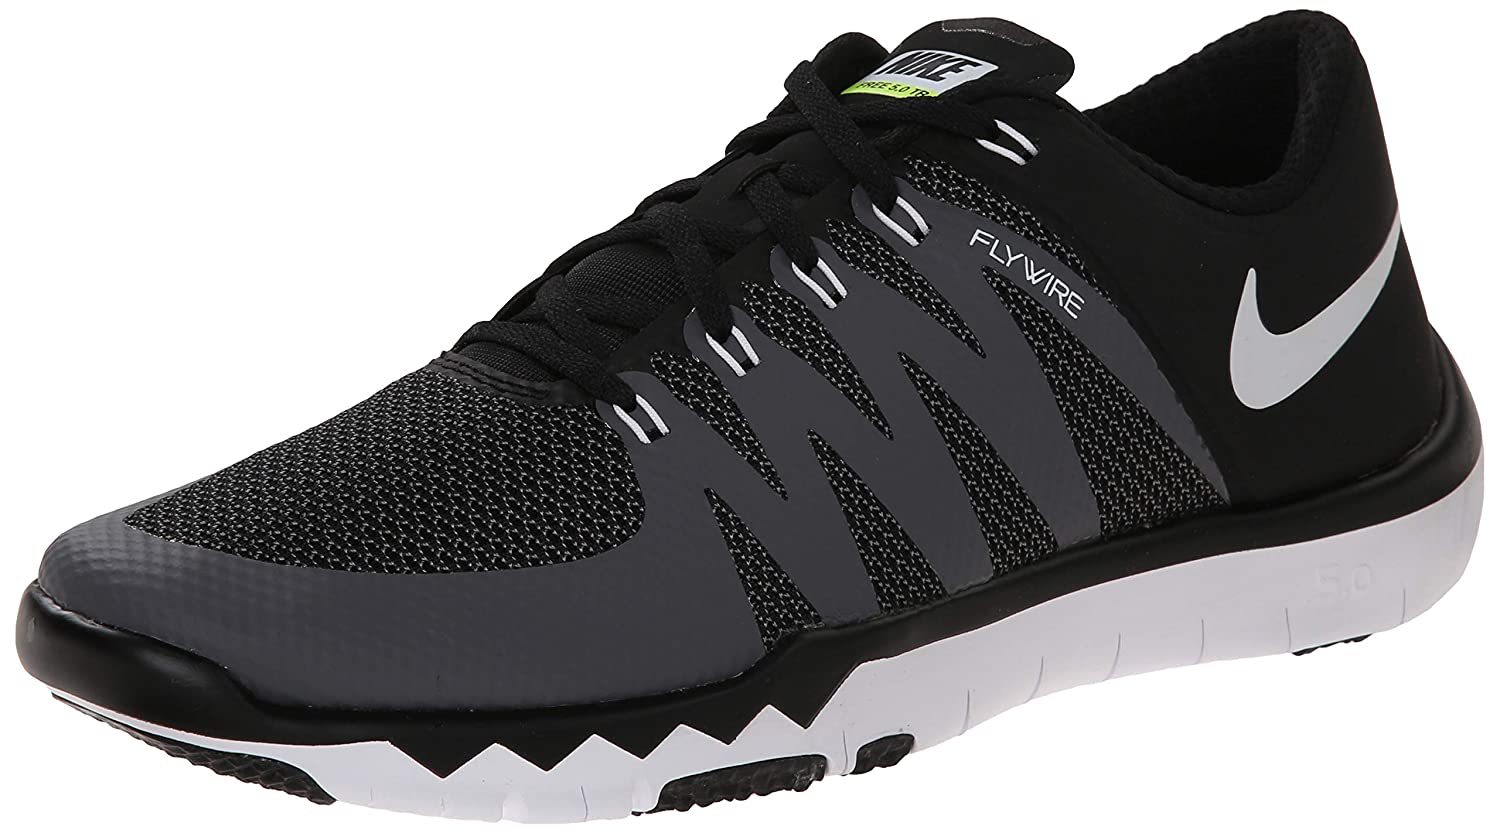 pretty nice 34bb5 92036 Nike Men's Free Trainer 5.0 V6 Training Shoe Black/Dark Grey/Volt/White  Size 8 M US